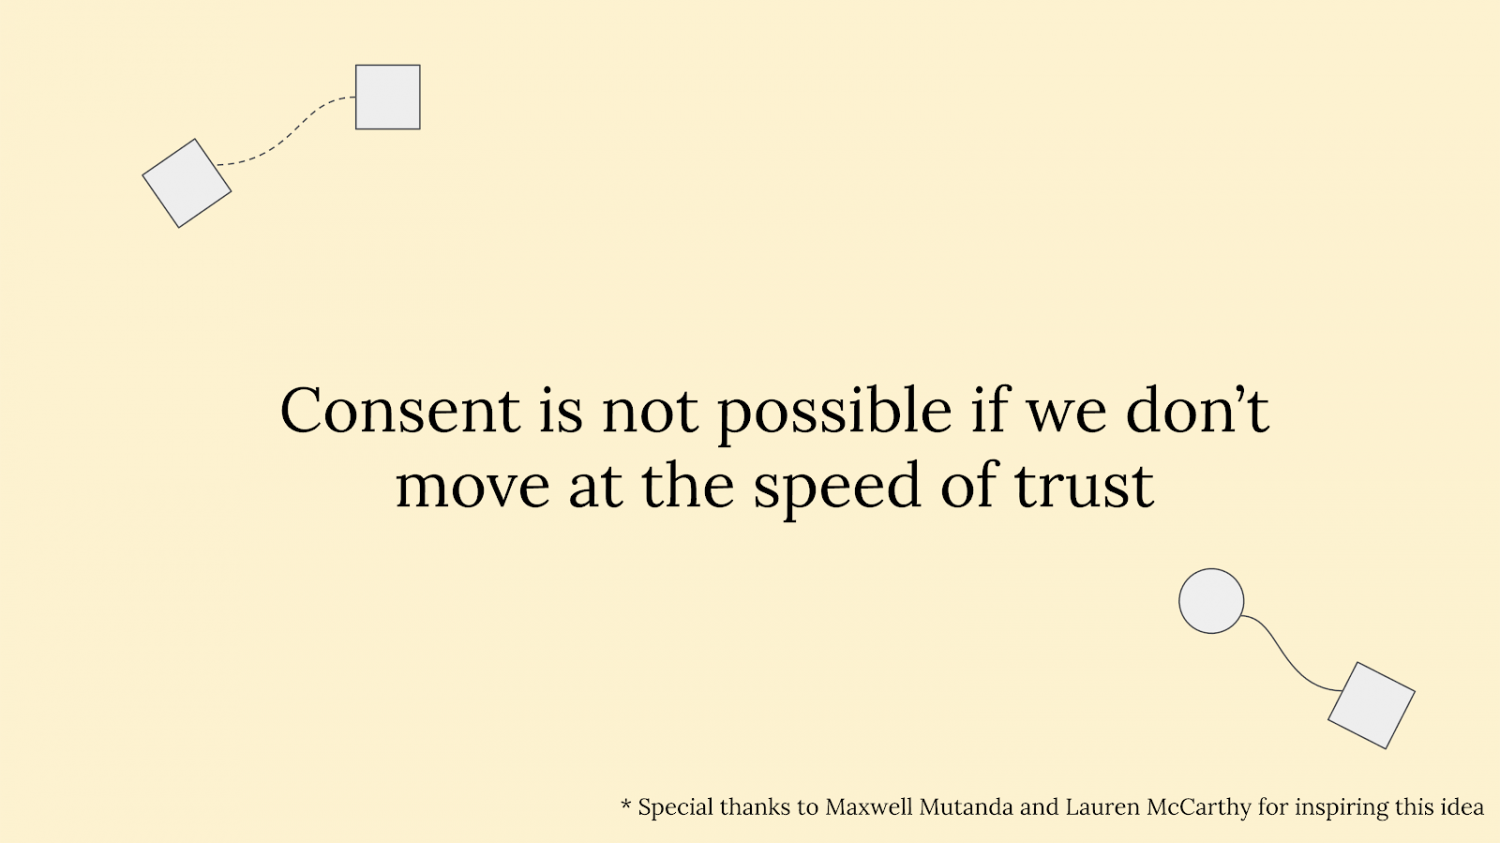 """Slide reading """"Consent is not possible if we don't move at the speed of trust"""" with circles and squares connected via wavy lines"""